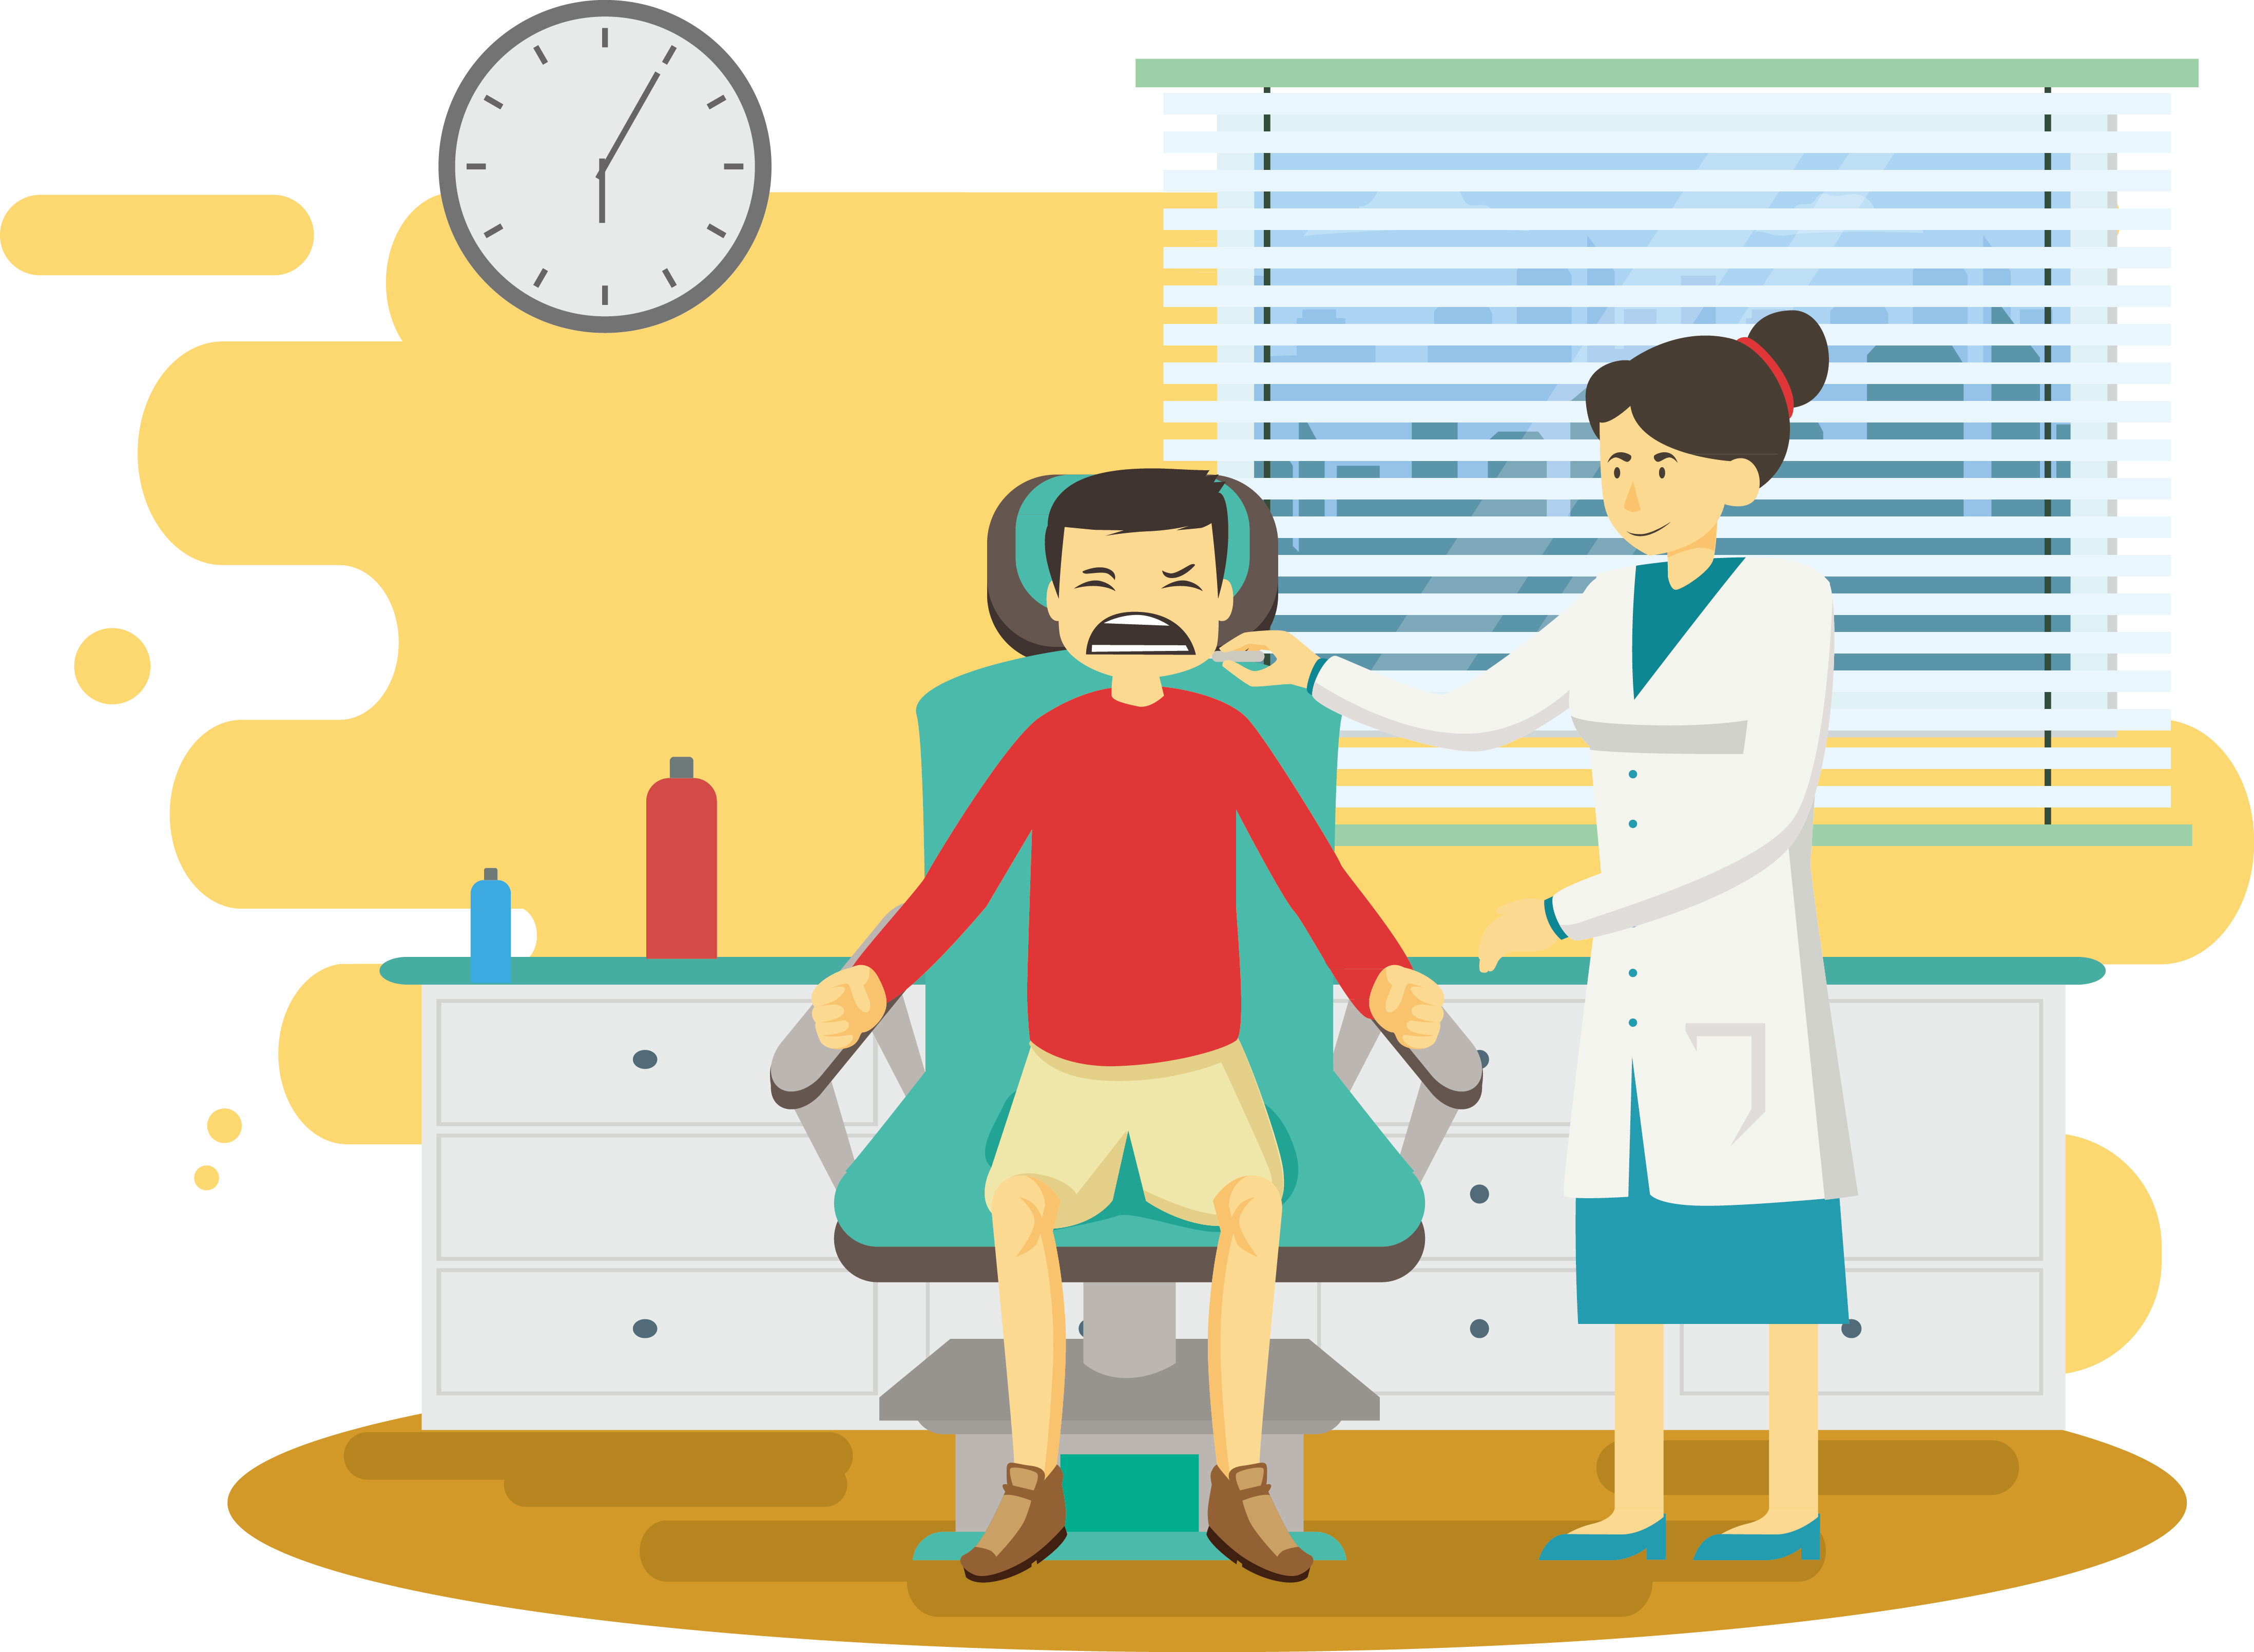 clip library download Dentist physician illustration hygiene. Vector doctor room